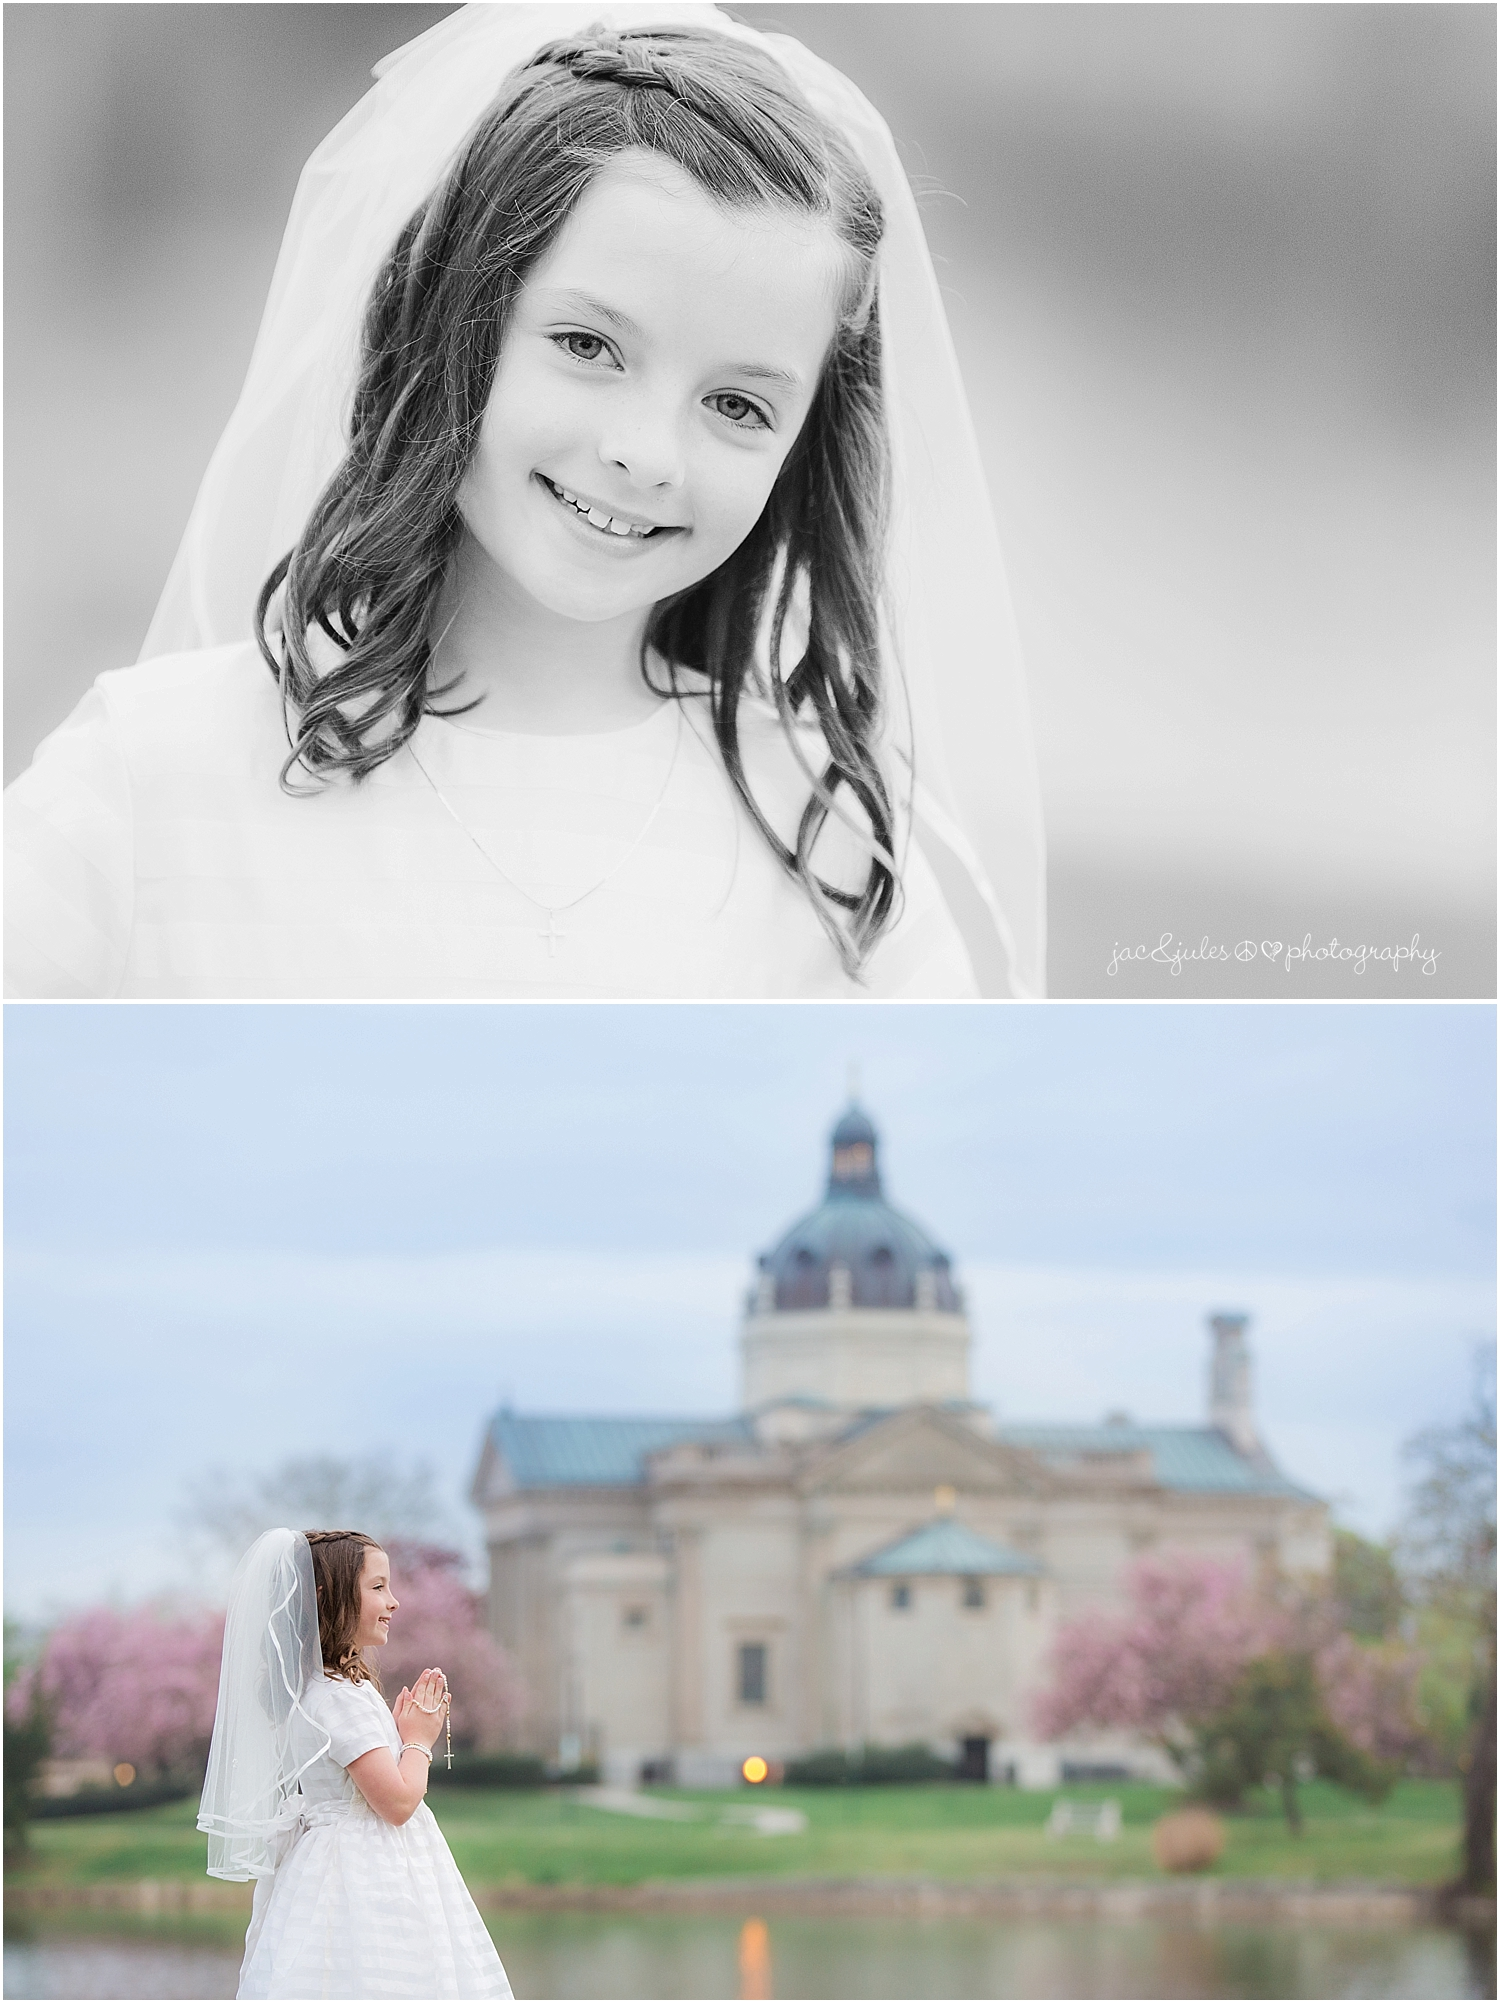 jacnjules photographs communion in Spring Lake NJ using the Cherry Blossoms at St. Catherine's Church